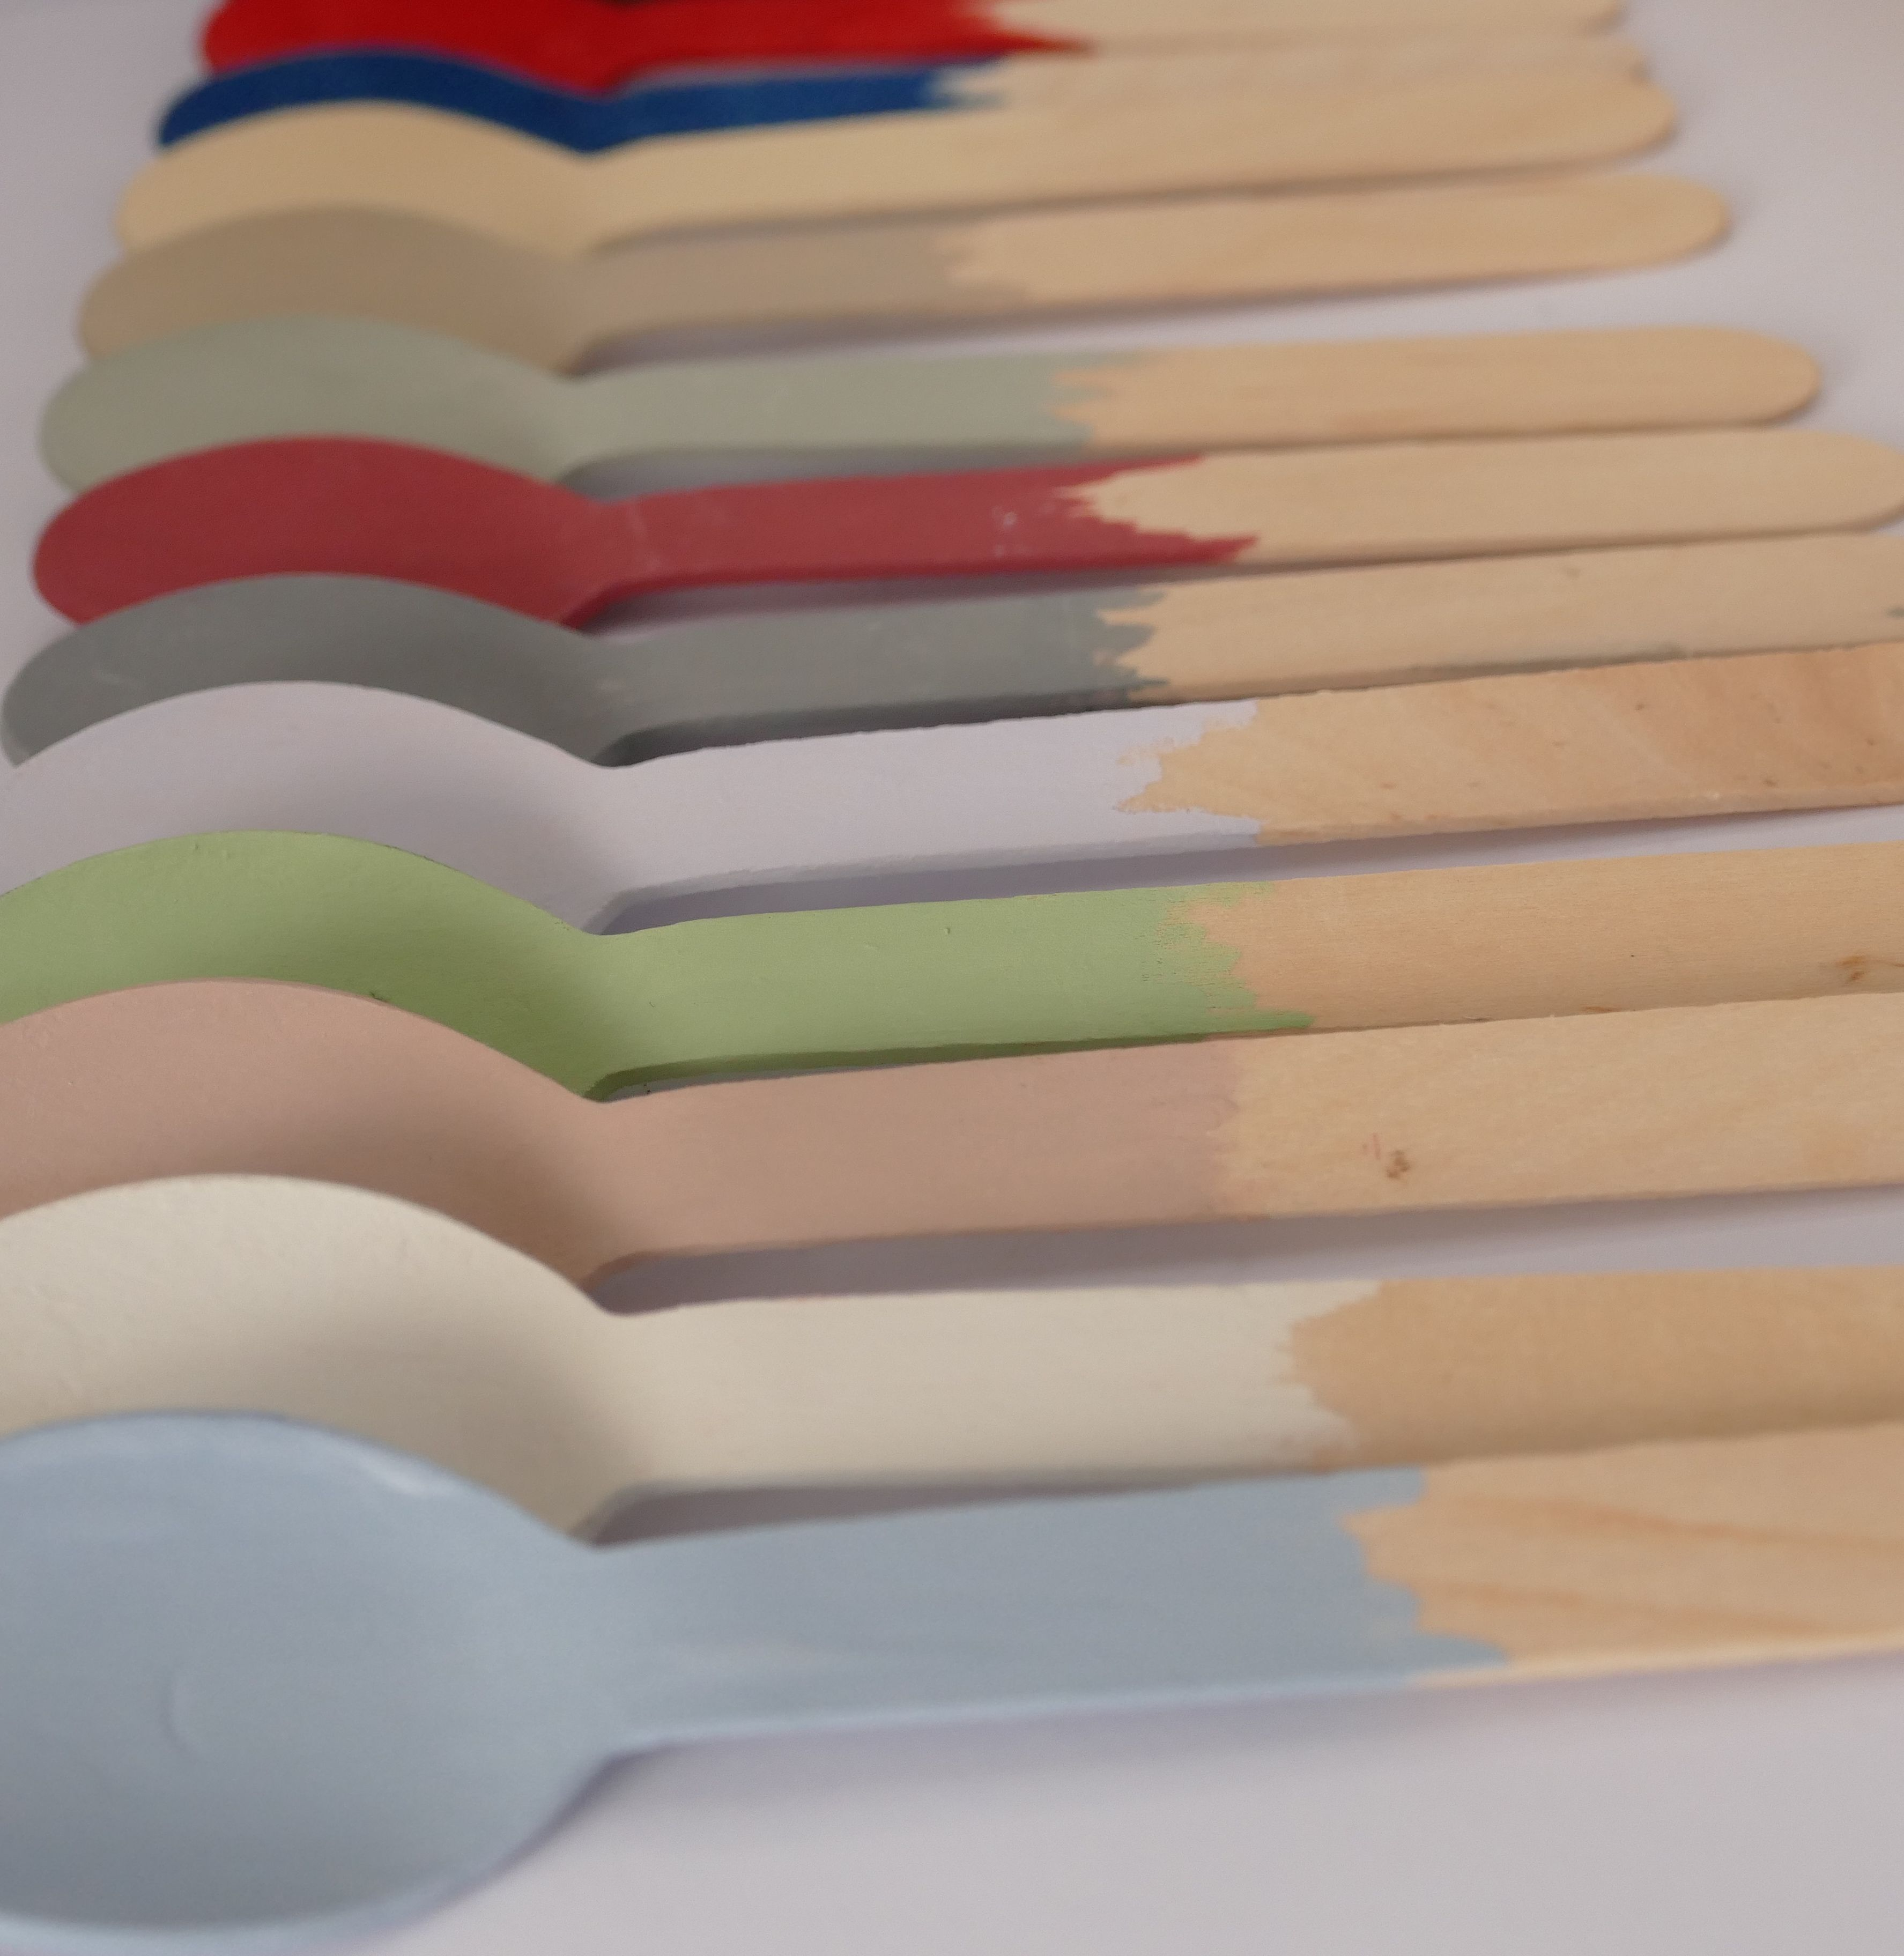 awesome newtons chalk finish paint colours powder blue in the front